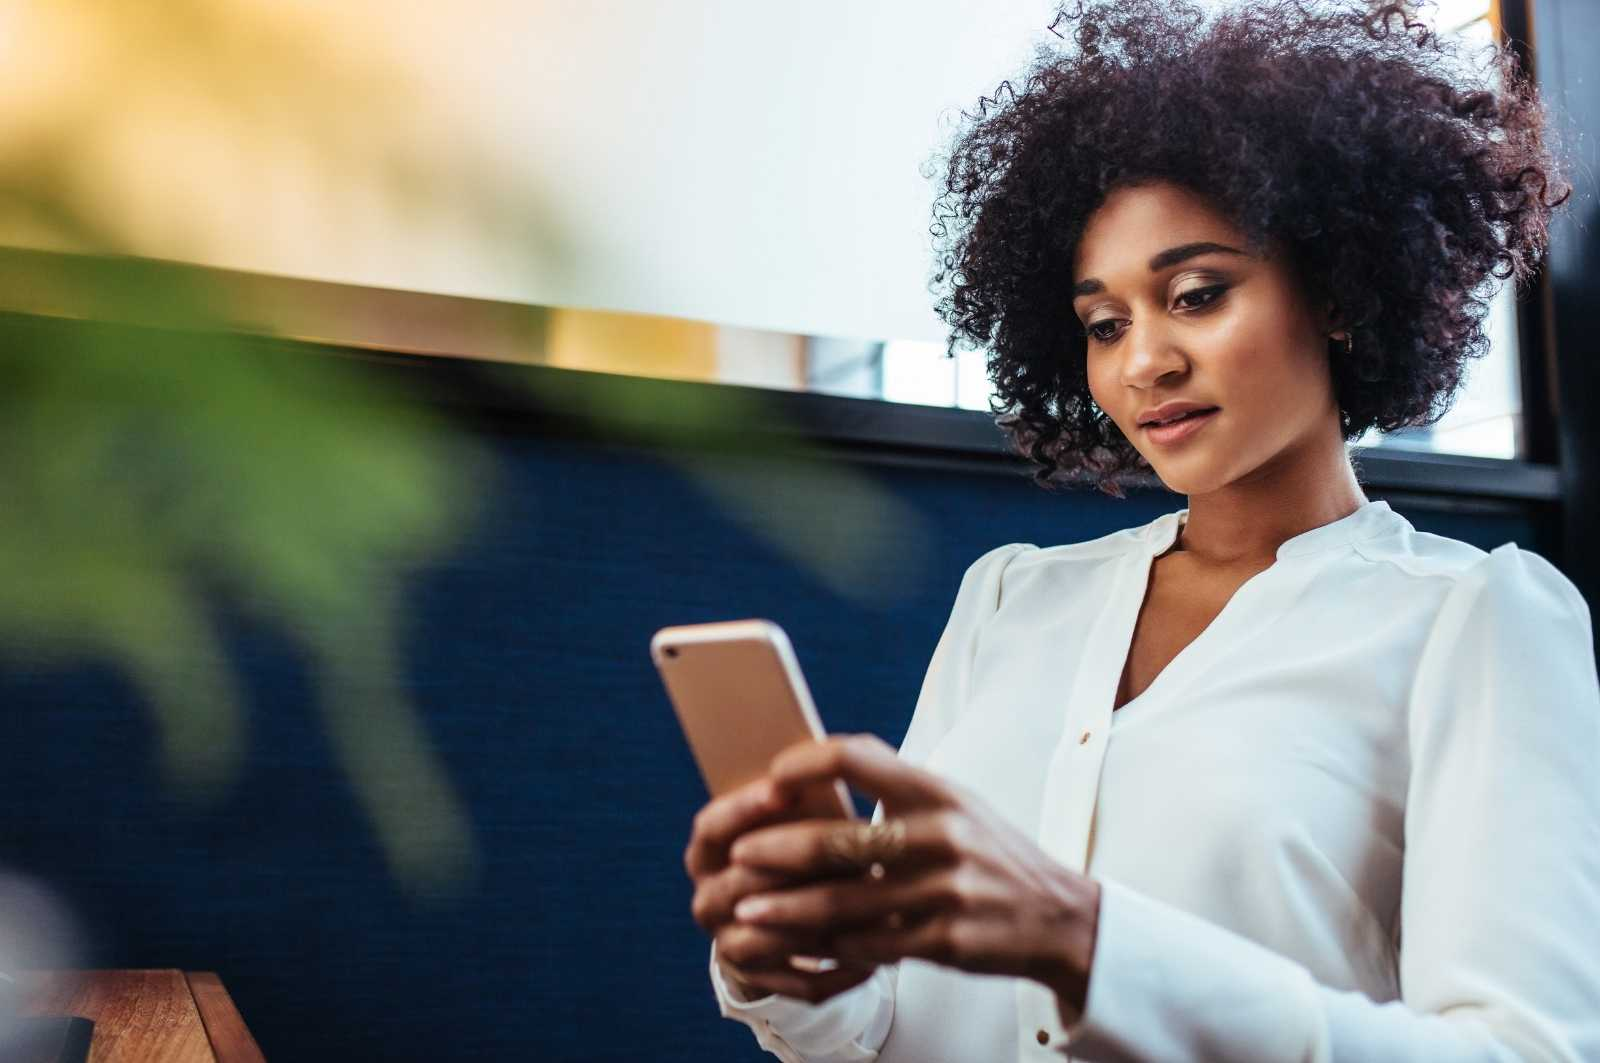 SMS is a creative medium that gets shoppers talking, so think outside the box! Win back more customers with these seven creative SMS marketing campaign ideas.